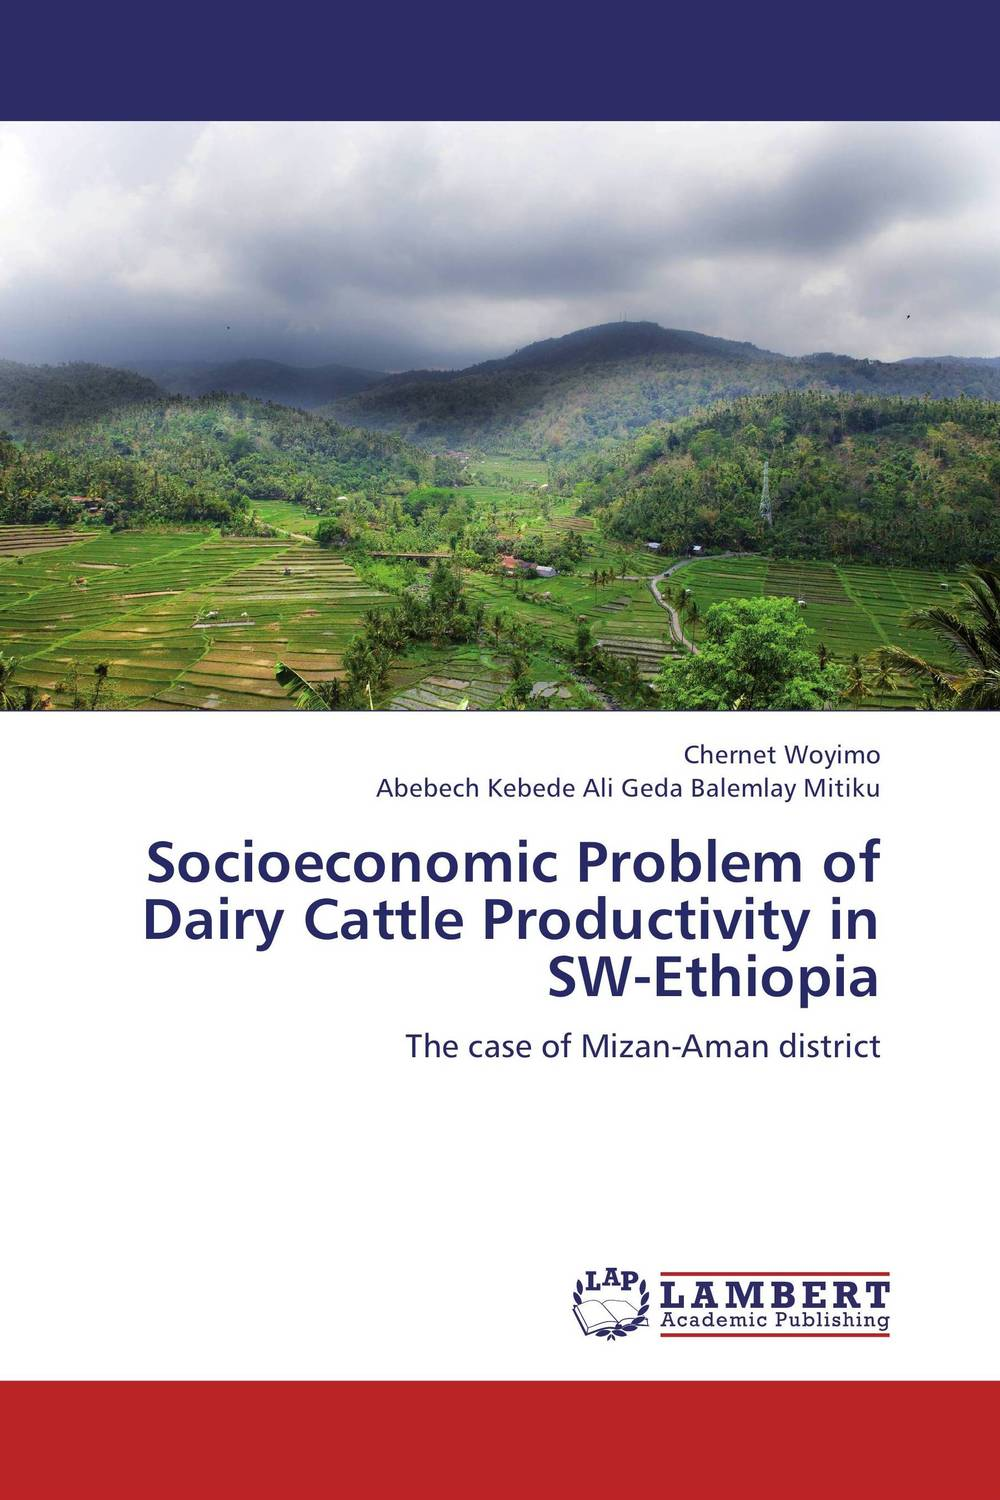 Socioeconomic Problem of Dairy Cattle Productivity in SW-Ethiopia therapeutic management of infertility in cattle